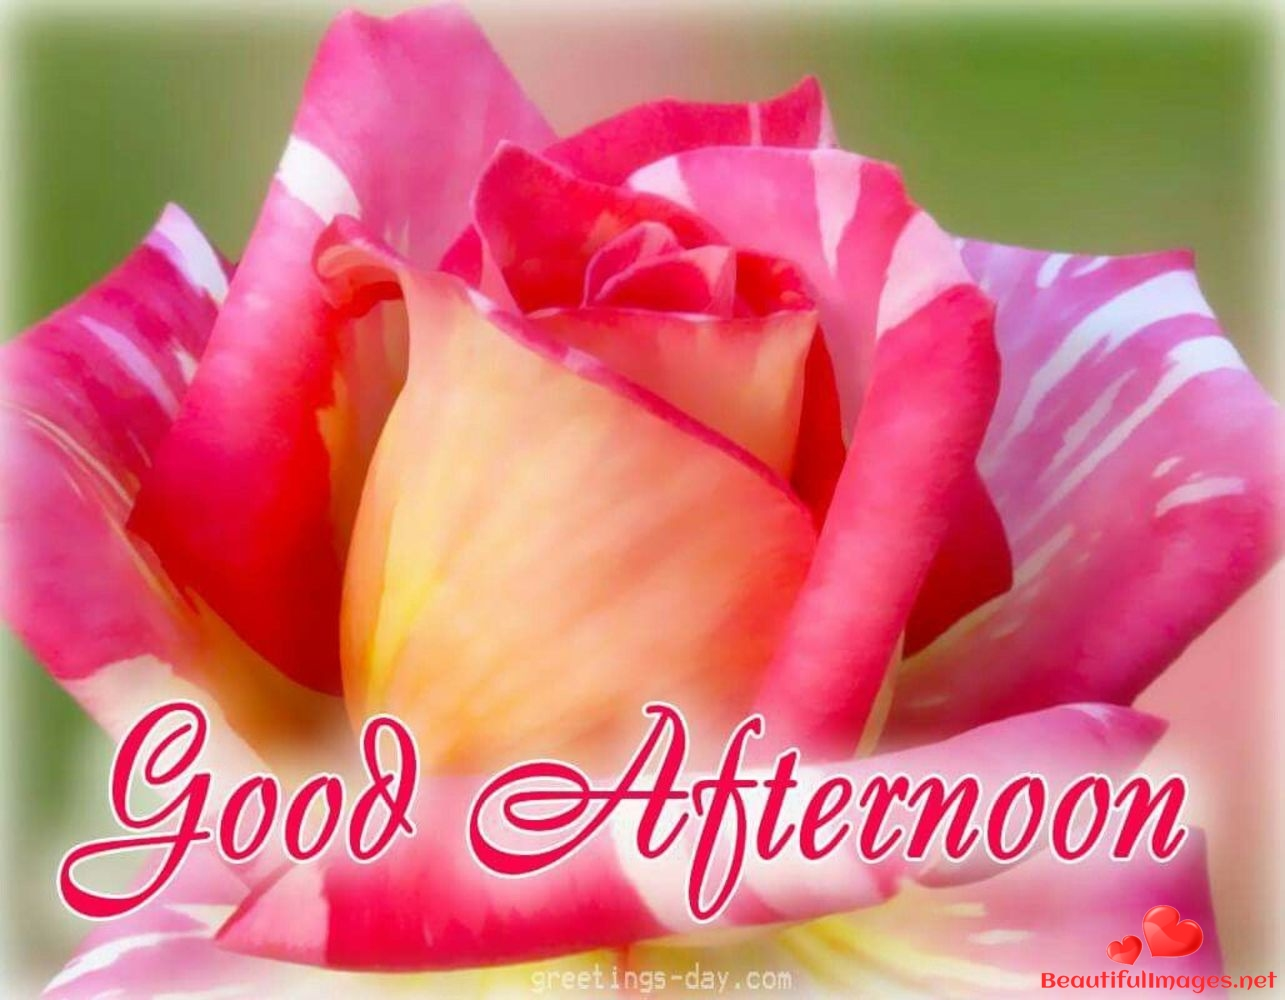 Good-Afternoon-Images-Whatsapp-Nice-Pics-28